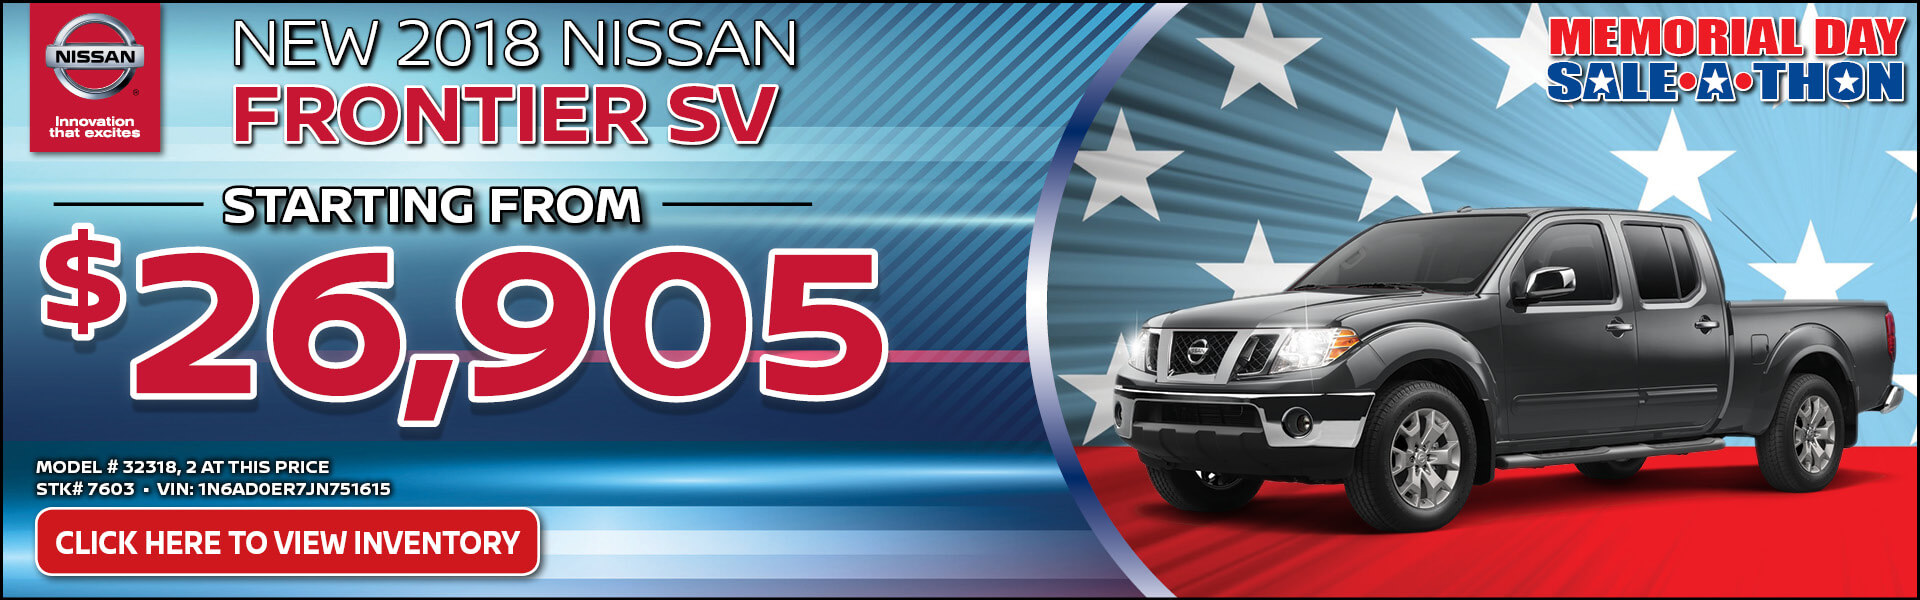 Nissan Frontier $26,905 Purchase